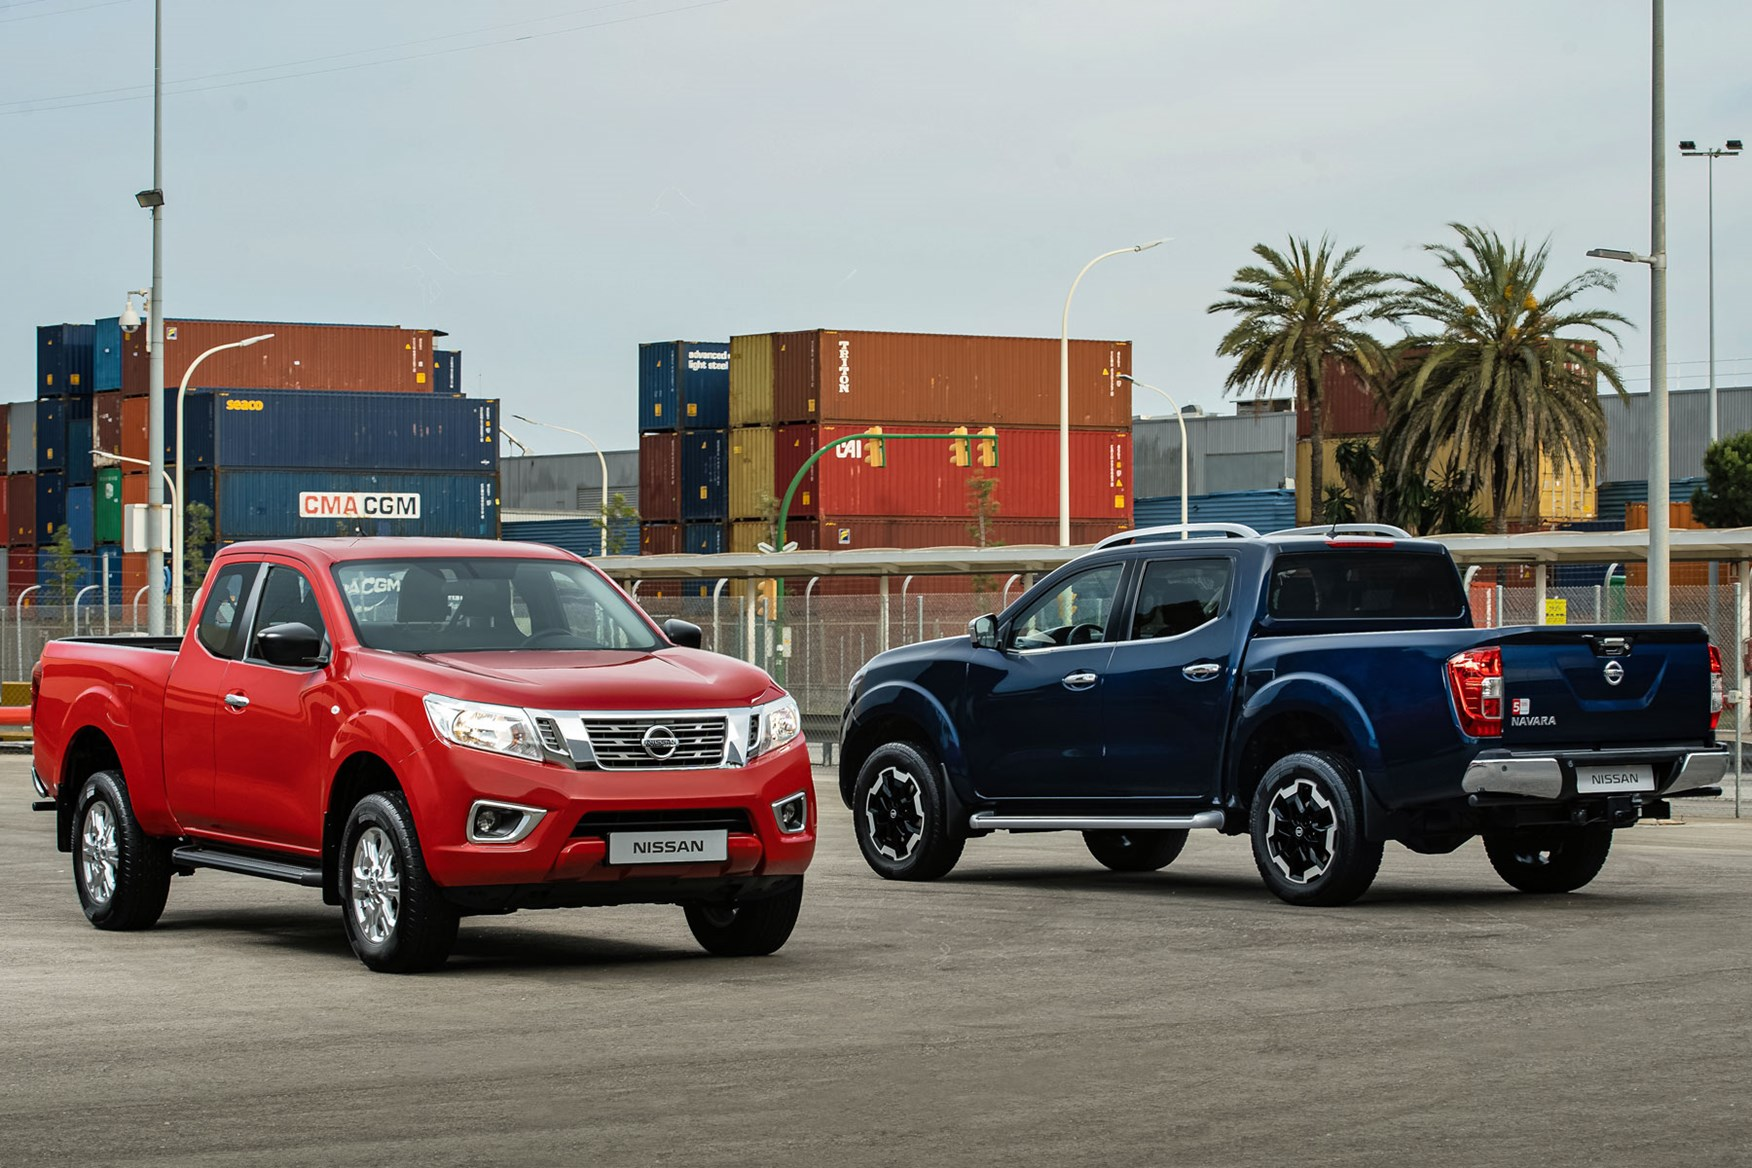 2019 Nissan Navara update - King Cab (red) and Double Cab (blue)